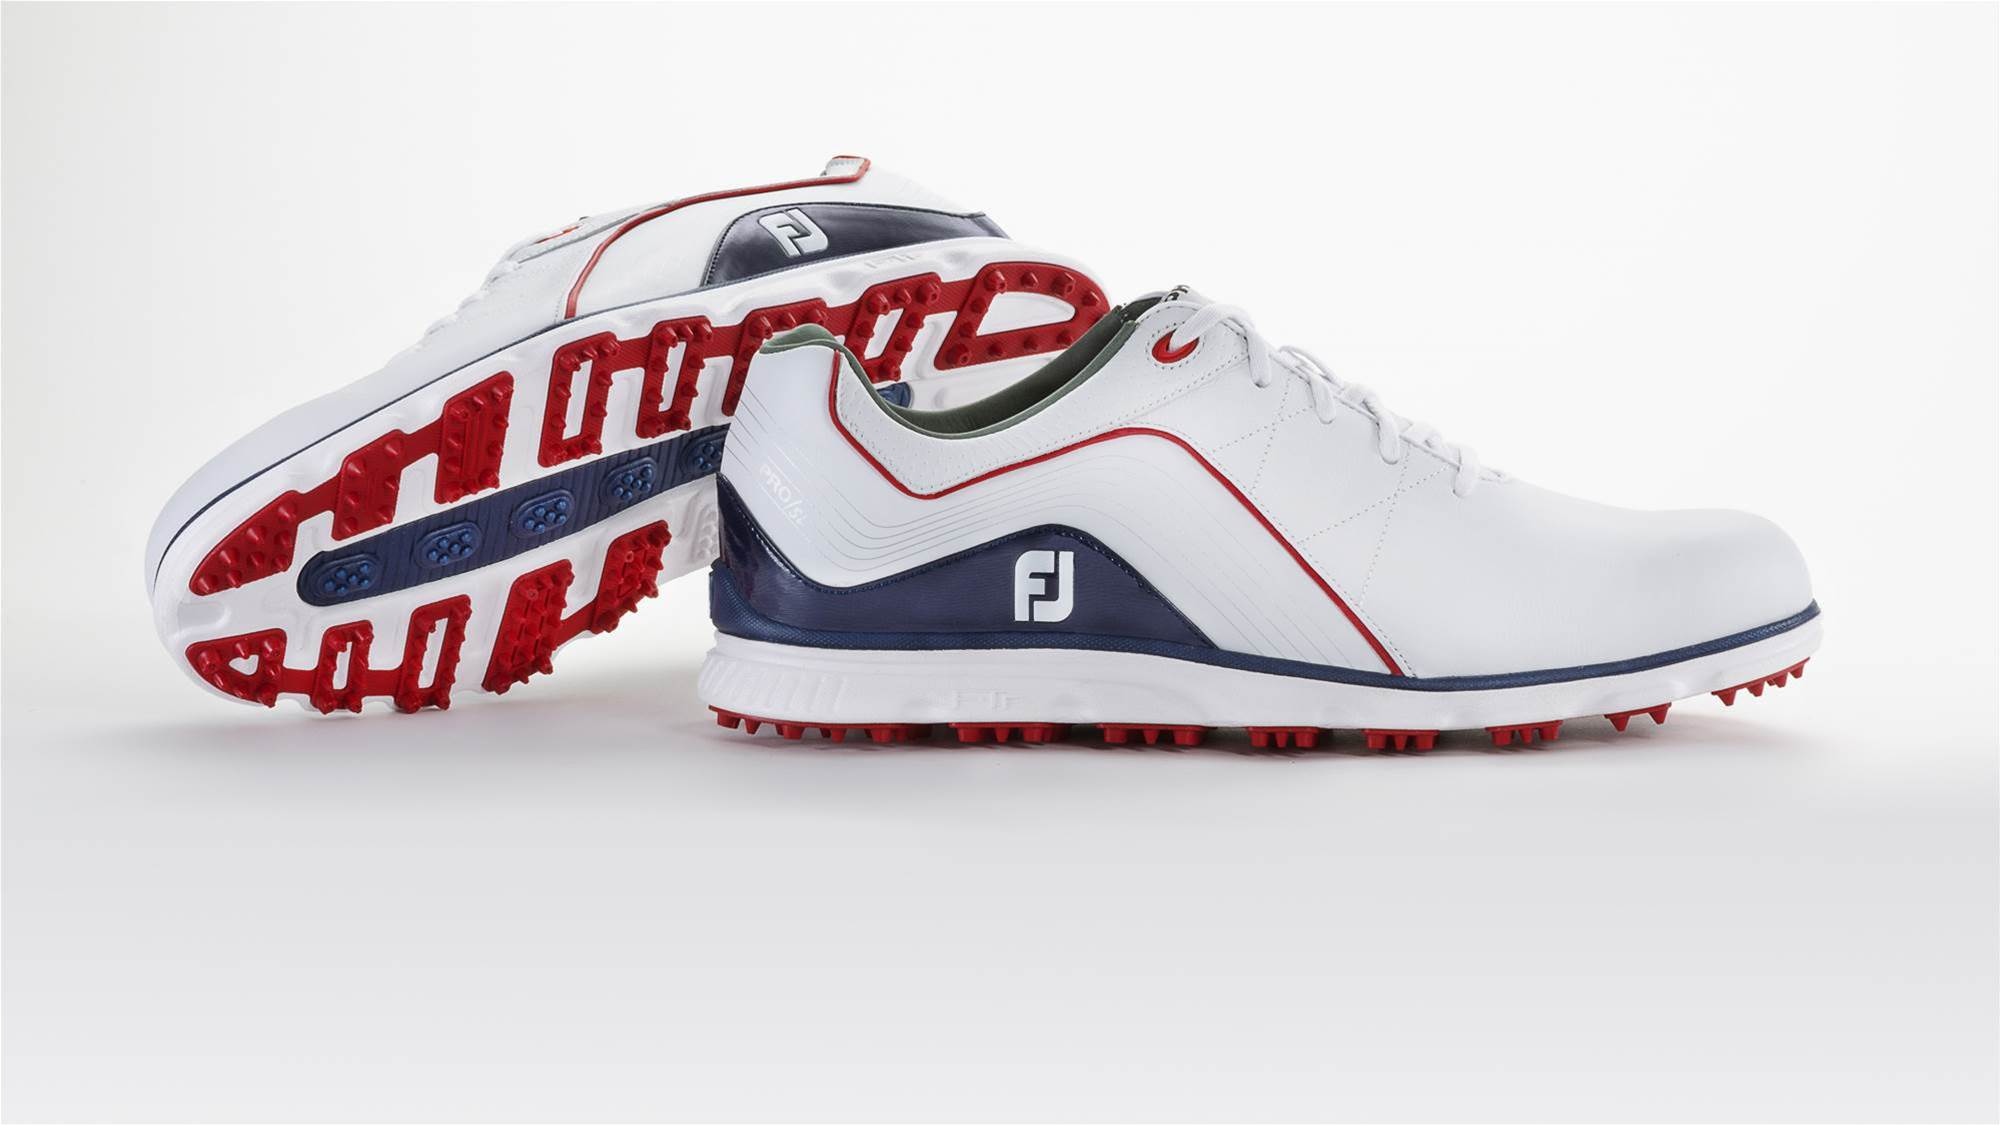 FootJoy Pro/SL gets a fresh look